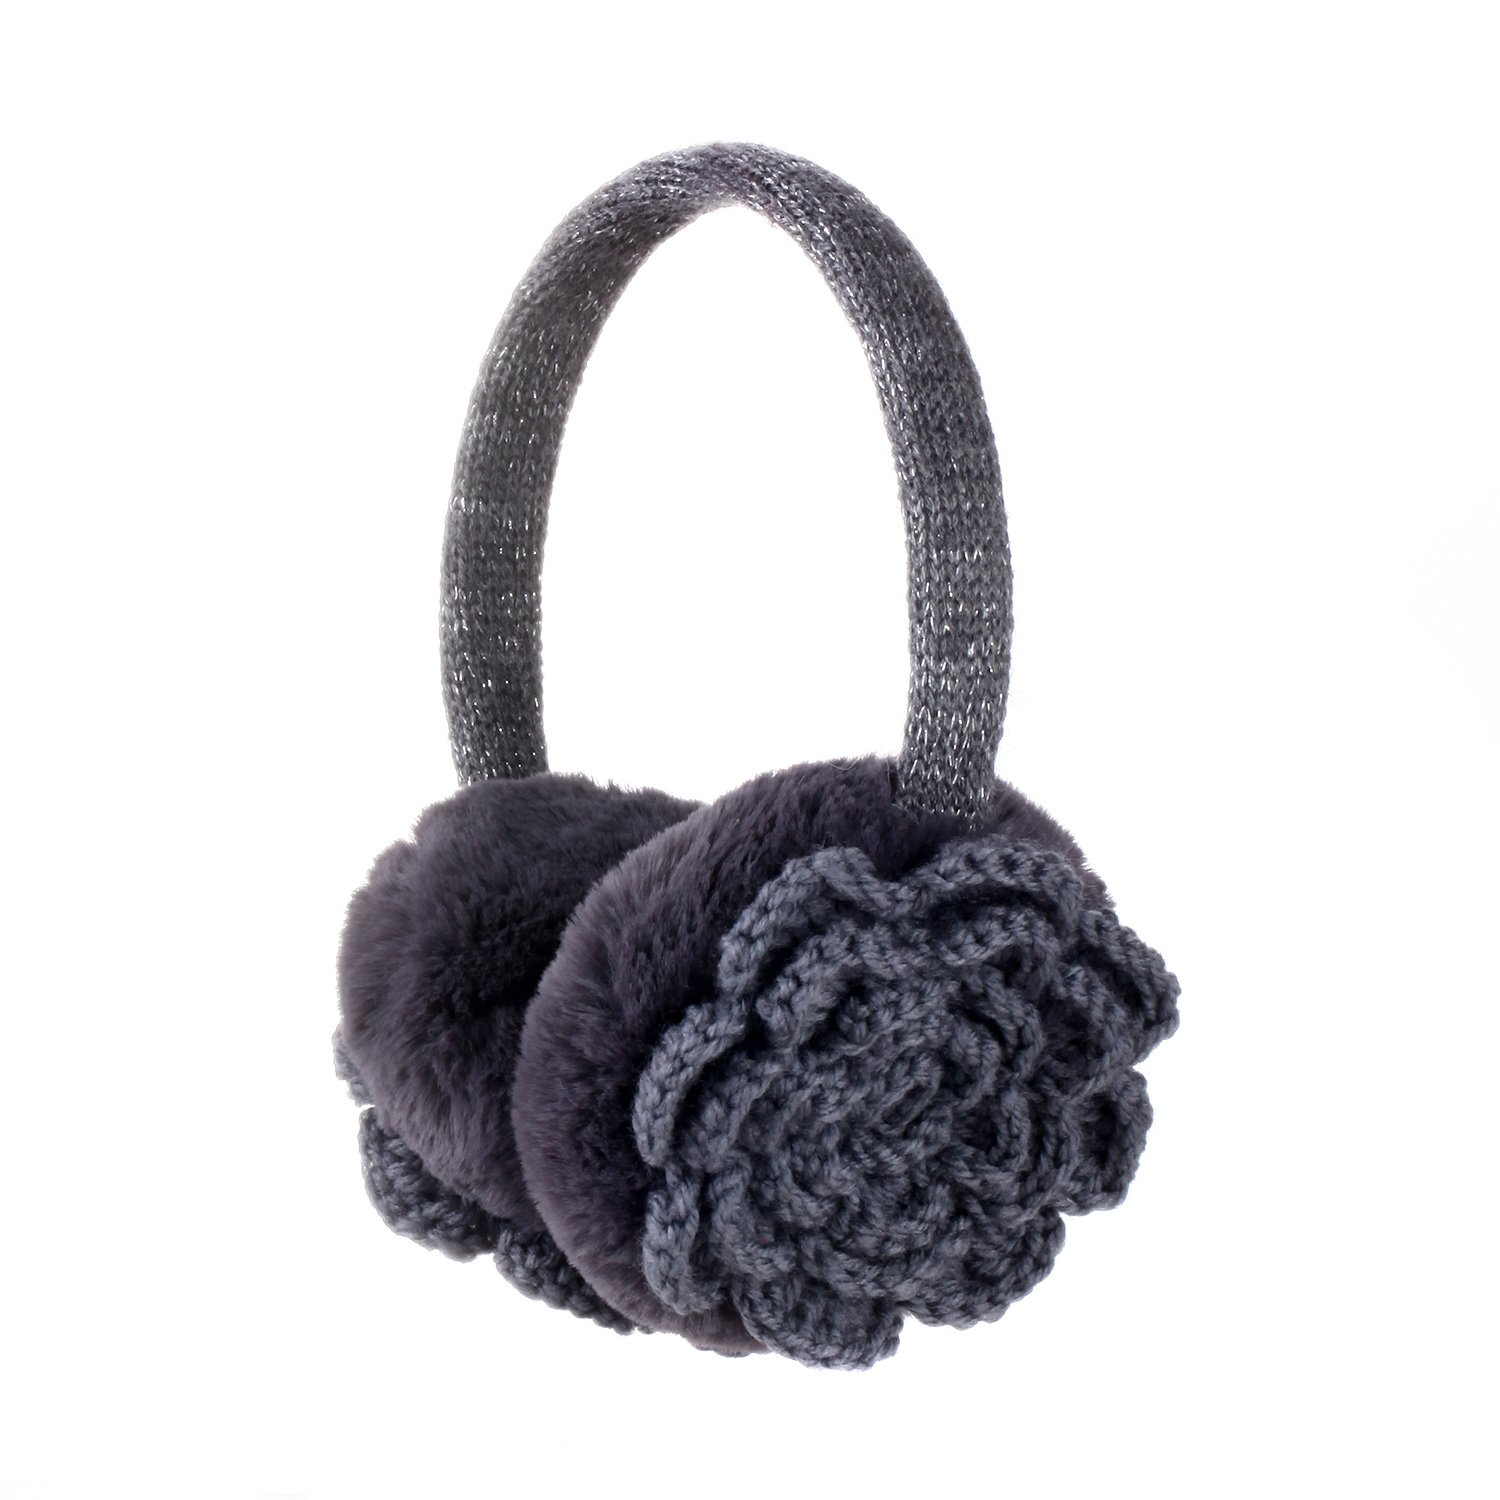 Sudawave Women Girls Winter Warm Crocheted Knitted Flower Faux Fur Plush Earmuffs